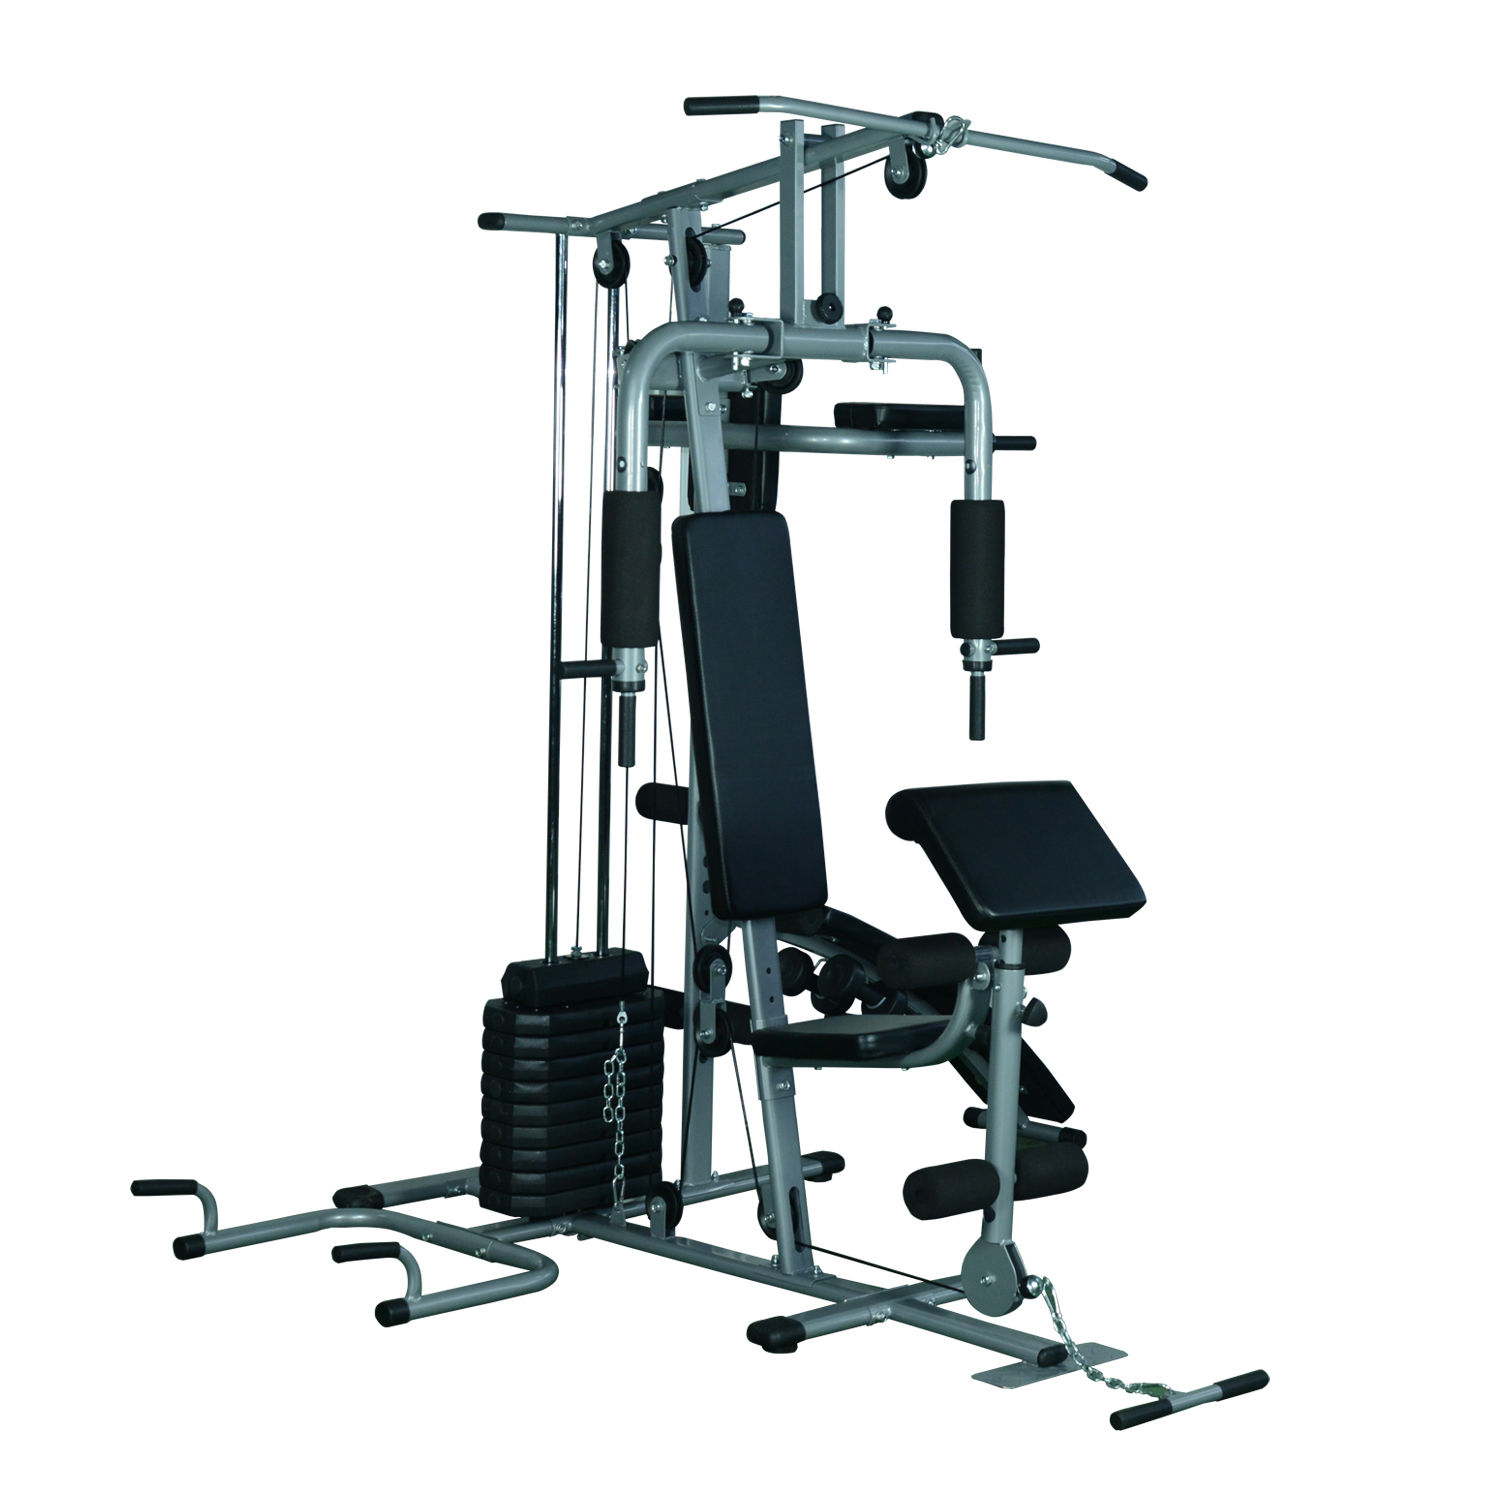 Fitness Equipment Home Gym: NEW HOME GYM DELUXE FITNESS EXERCISE MACHINE WEIGHT